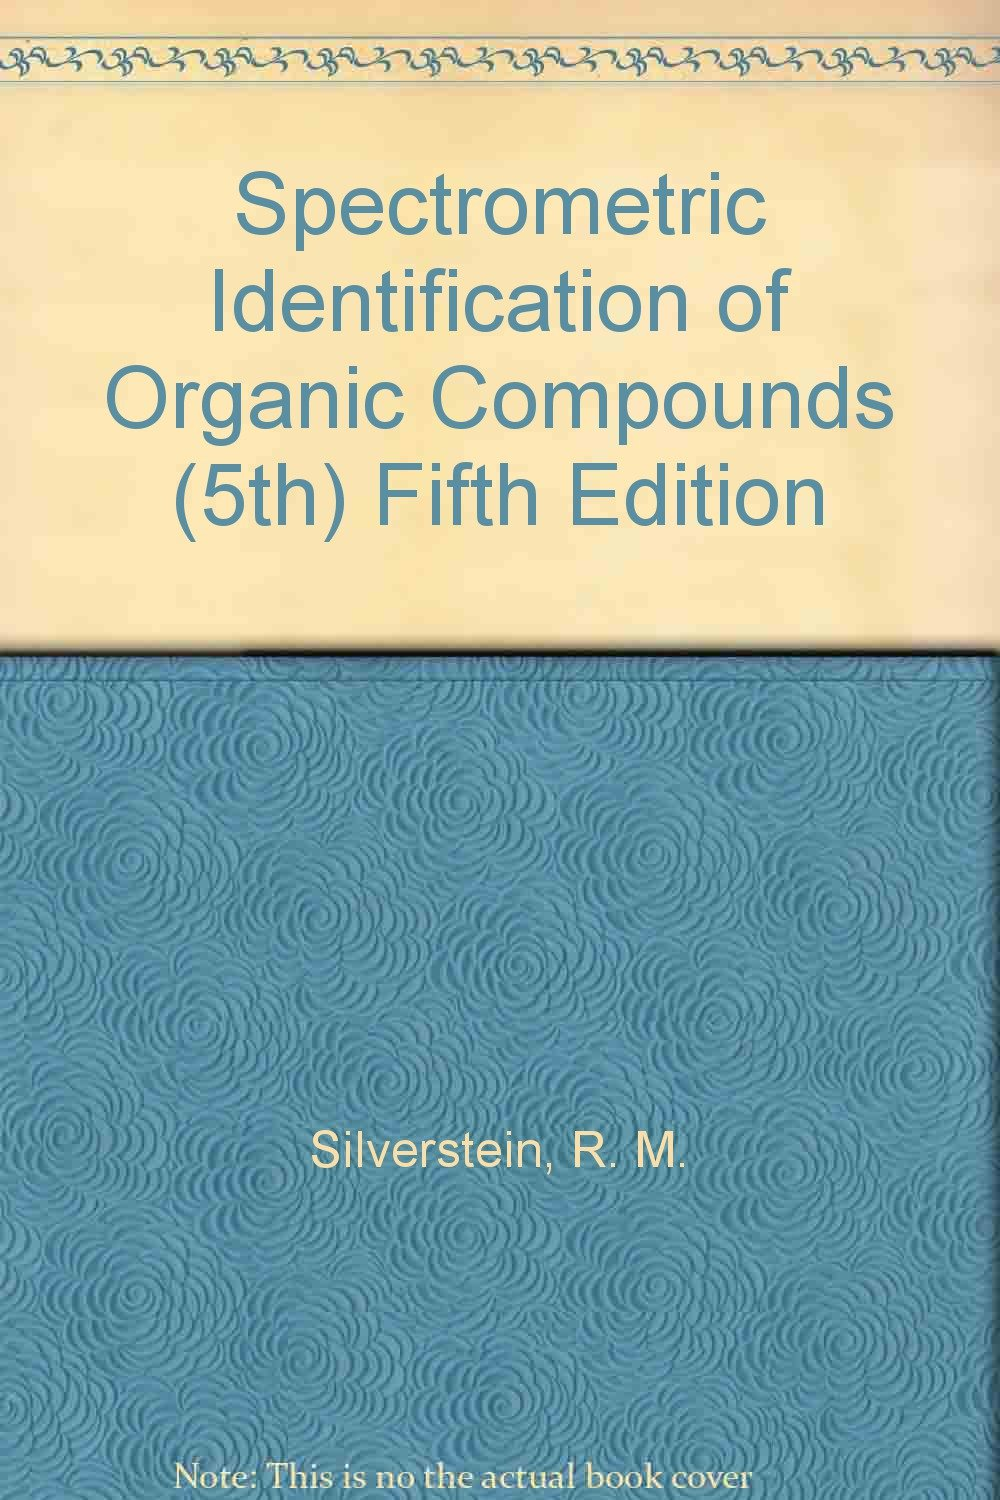 Compounds of silverstein pdf organic spectrometric identification